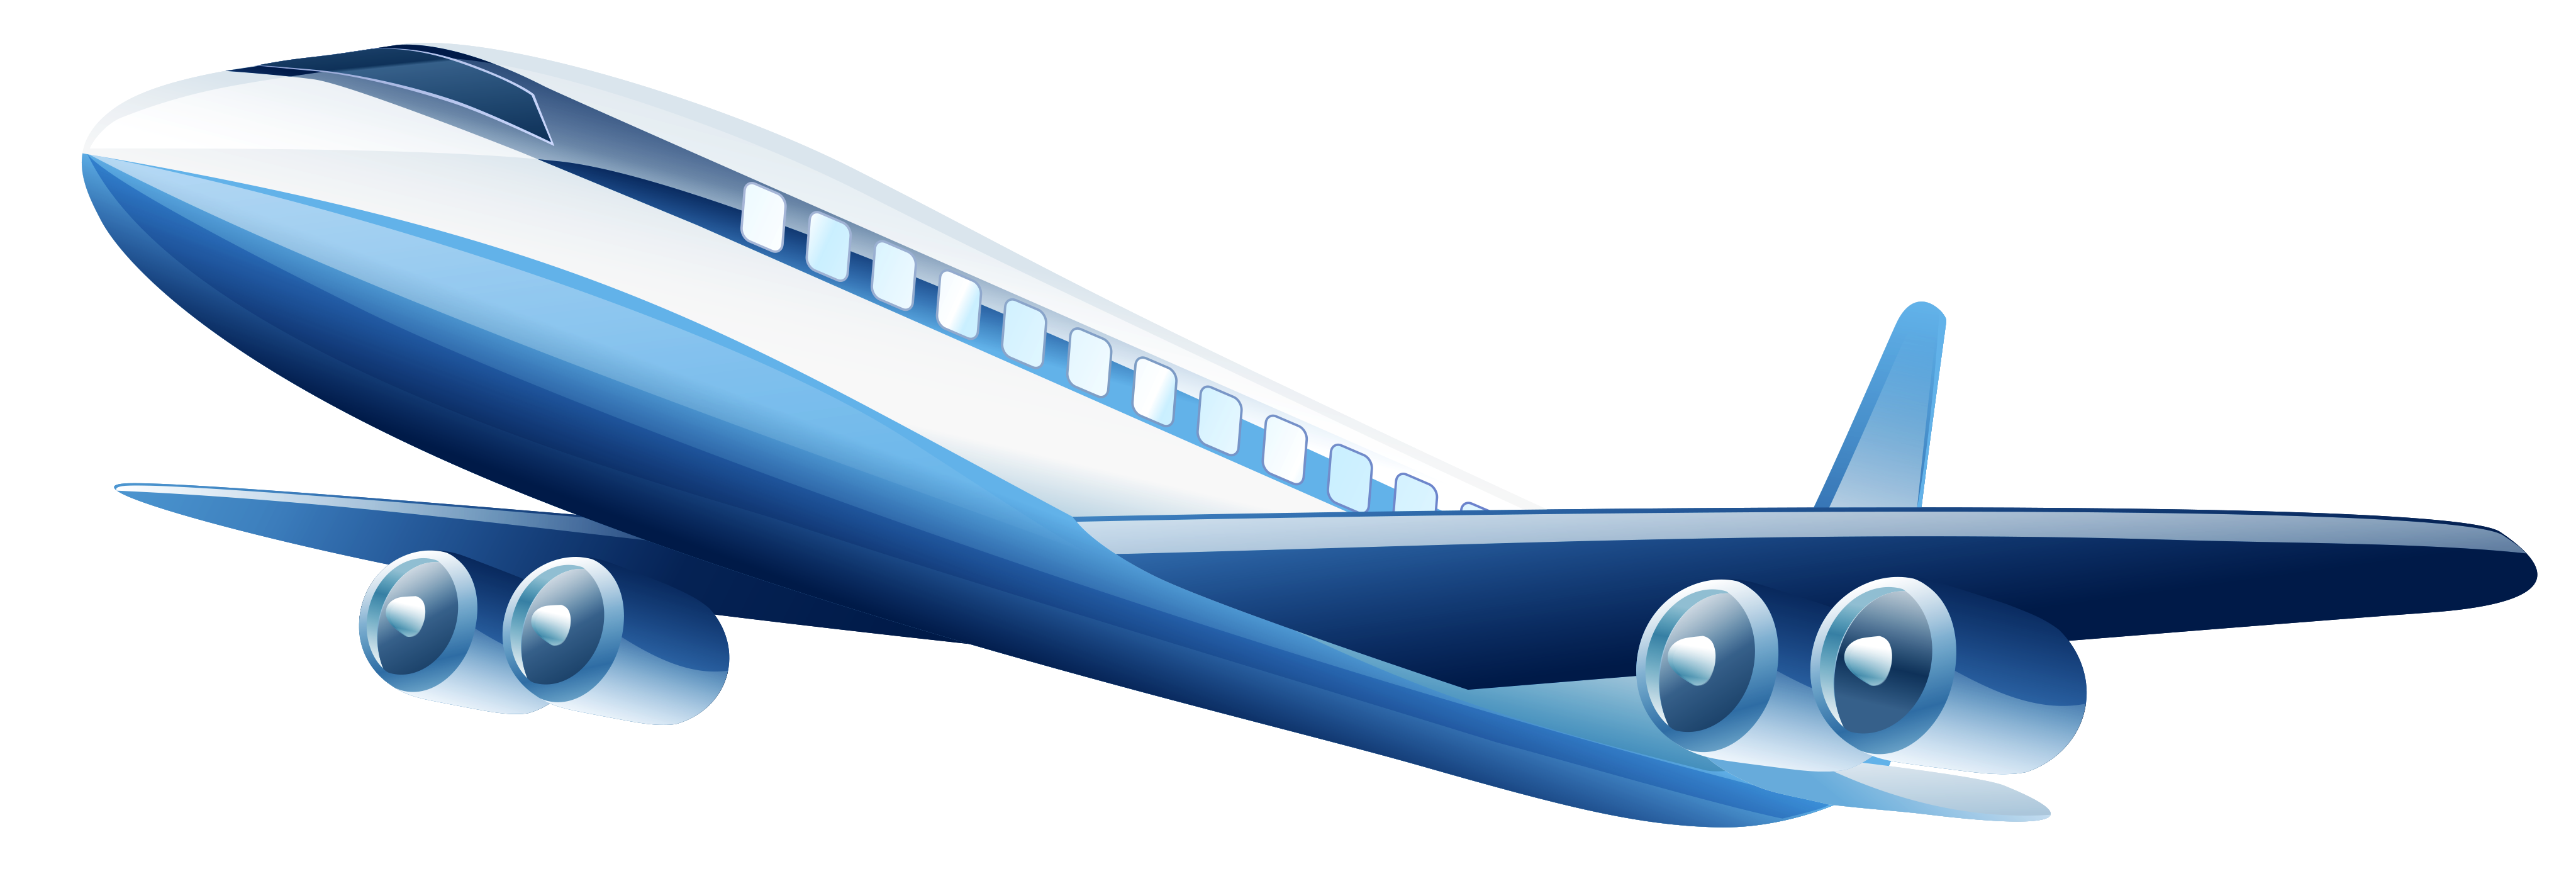 Airplane with banner png. Blue clipart best web